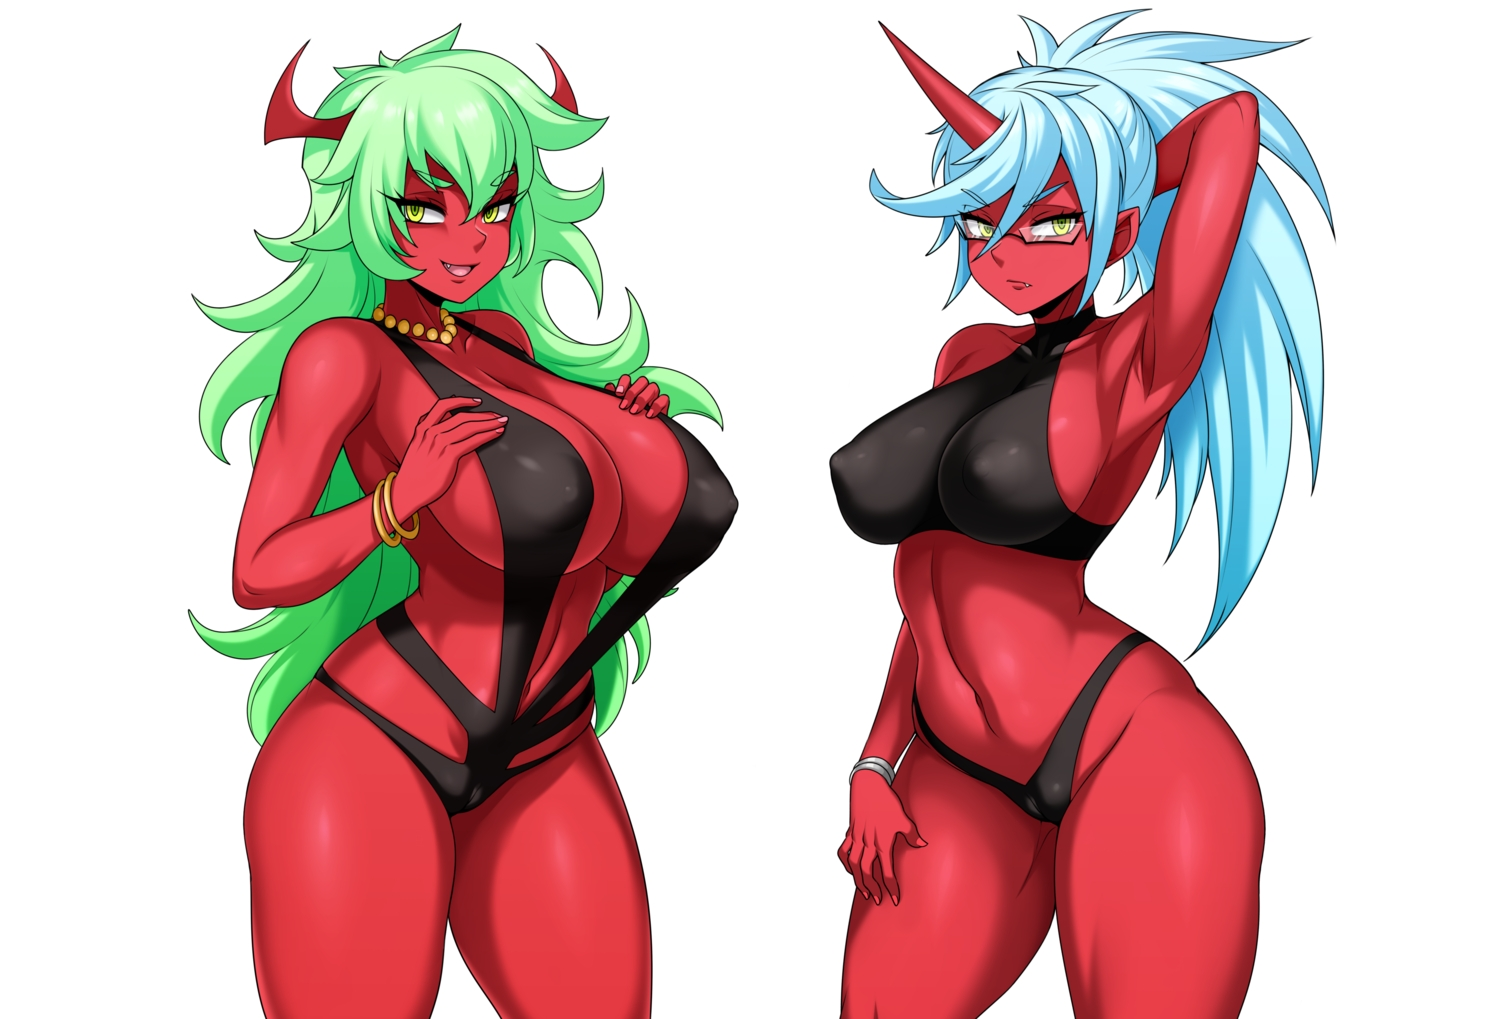 2girls aqua_hair bikini breast_hold breasts cameltoe cleavage demon erect_nipples fang glasses green_eyes green_hair horns jmg kneesocks_(character) long_hair necklace panty_&_stocking_with_garterbelt scanty sideboob swimsuit third-party_edit white wristwear